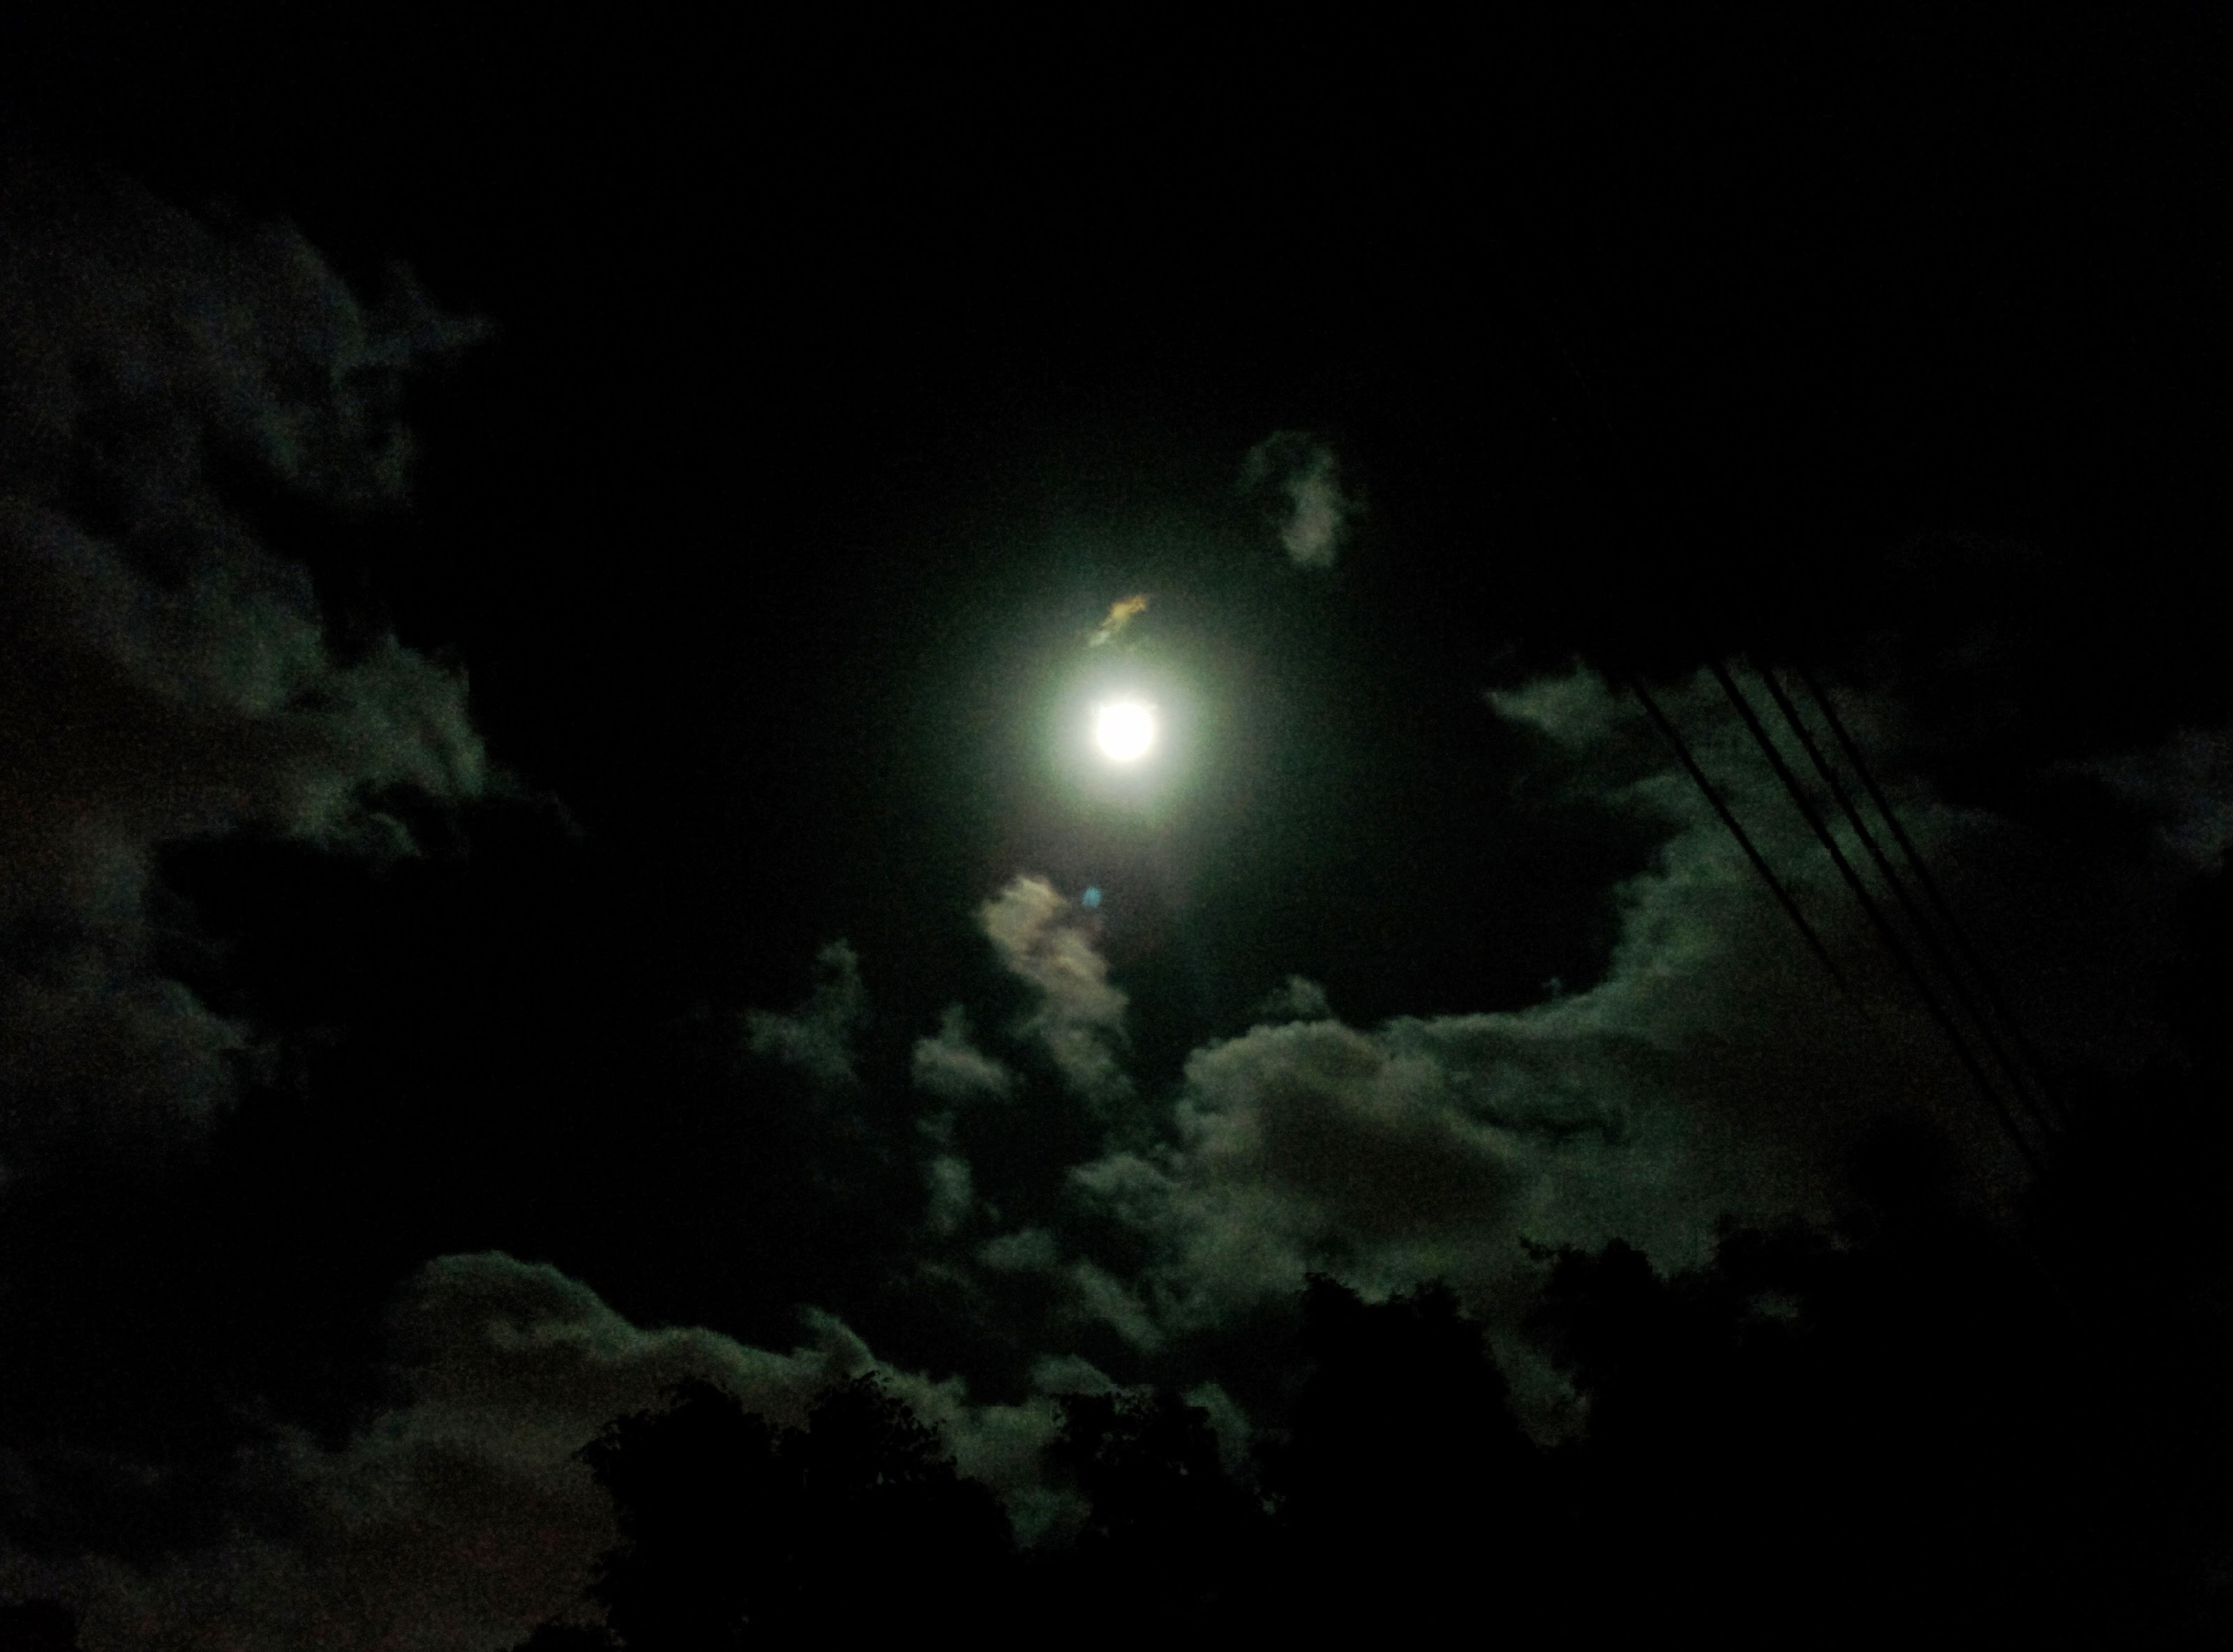 My mobile camera doesn't capture how pretty. Supermoon from #Cyprus http://en.wikipedia.org/wiki/Supermoon A supermoon is the coincidence of a full